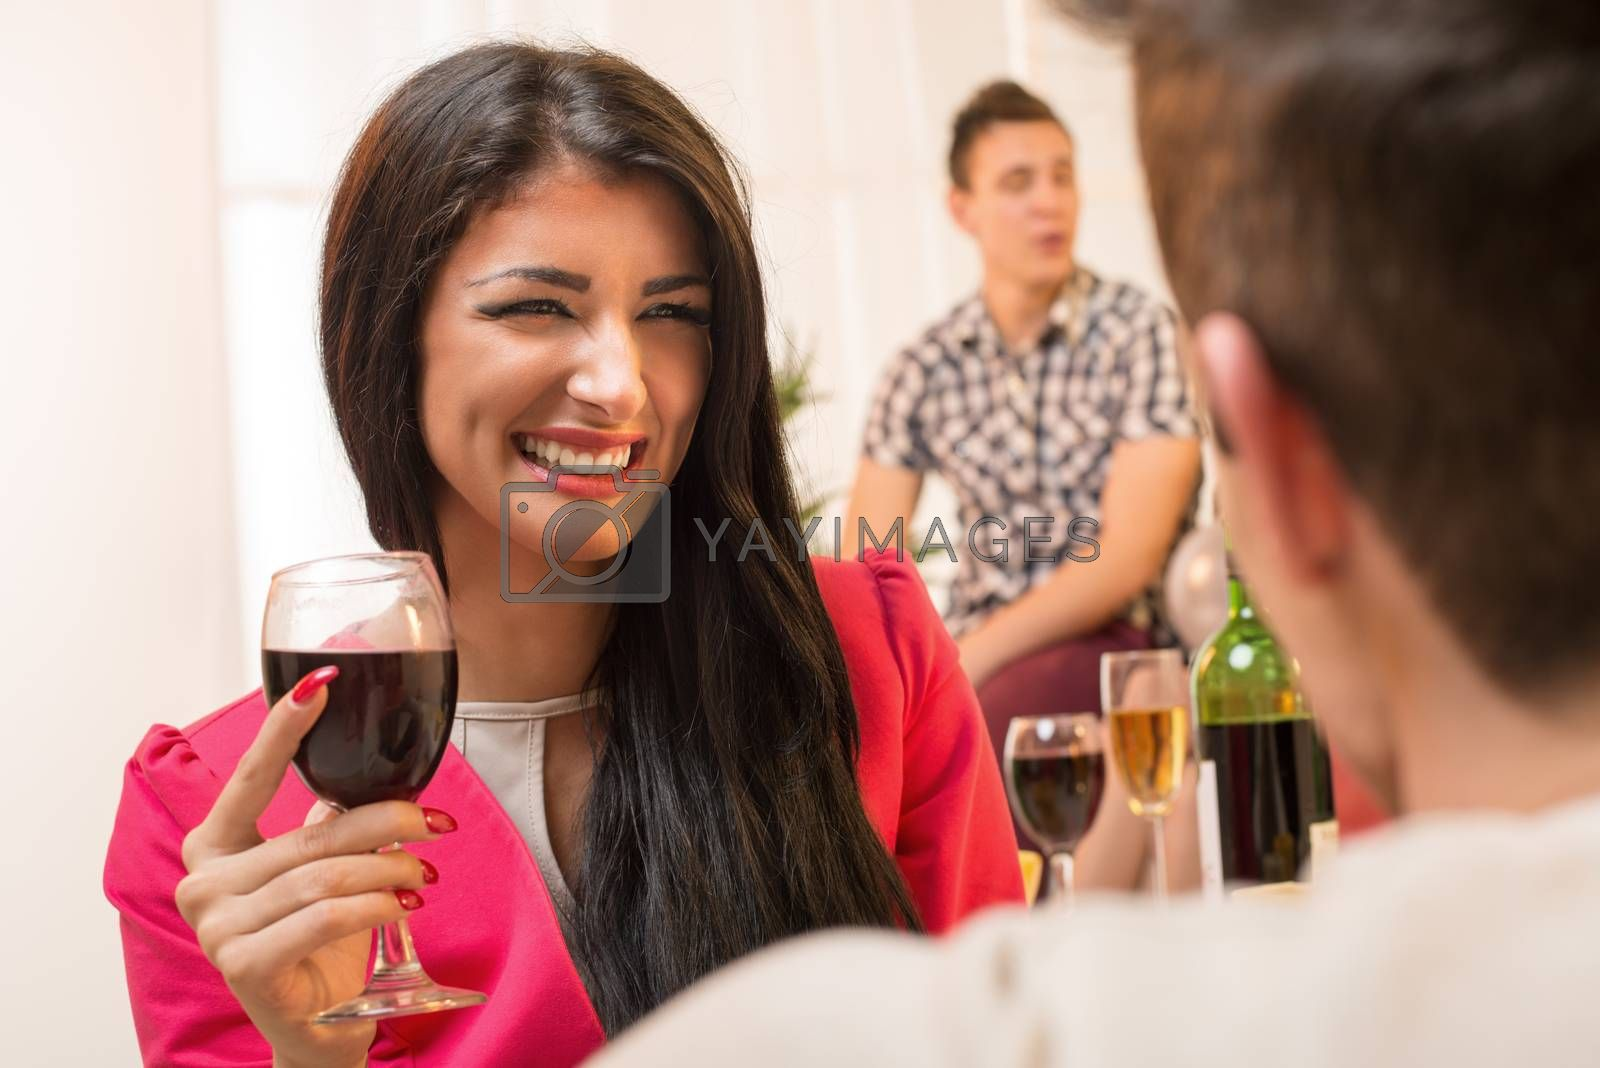 Young pretty brunette girl with a glass of wine in hand, with a smile looking at the guy who has his back turned to the camera, while in the background see another young guy in the ambient house party.